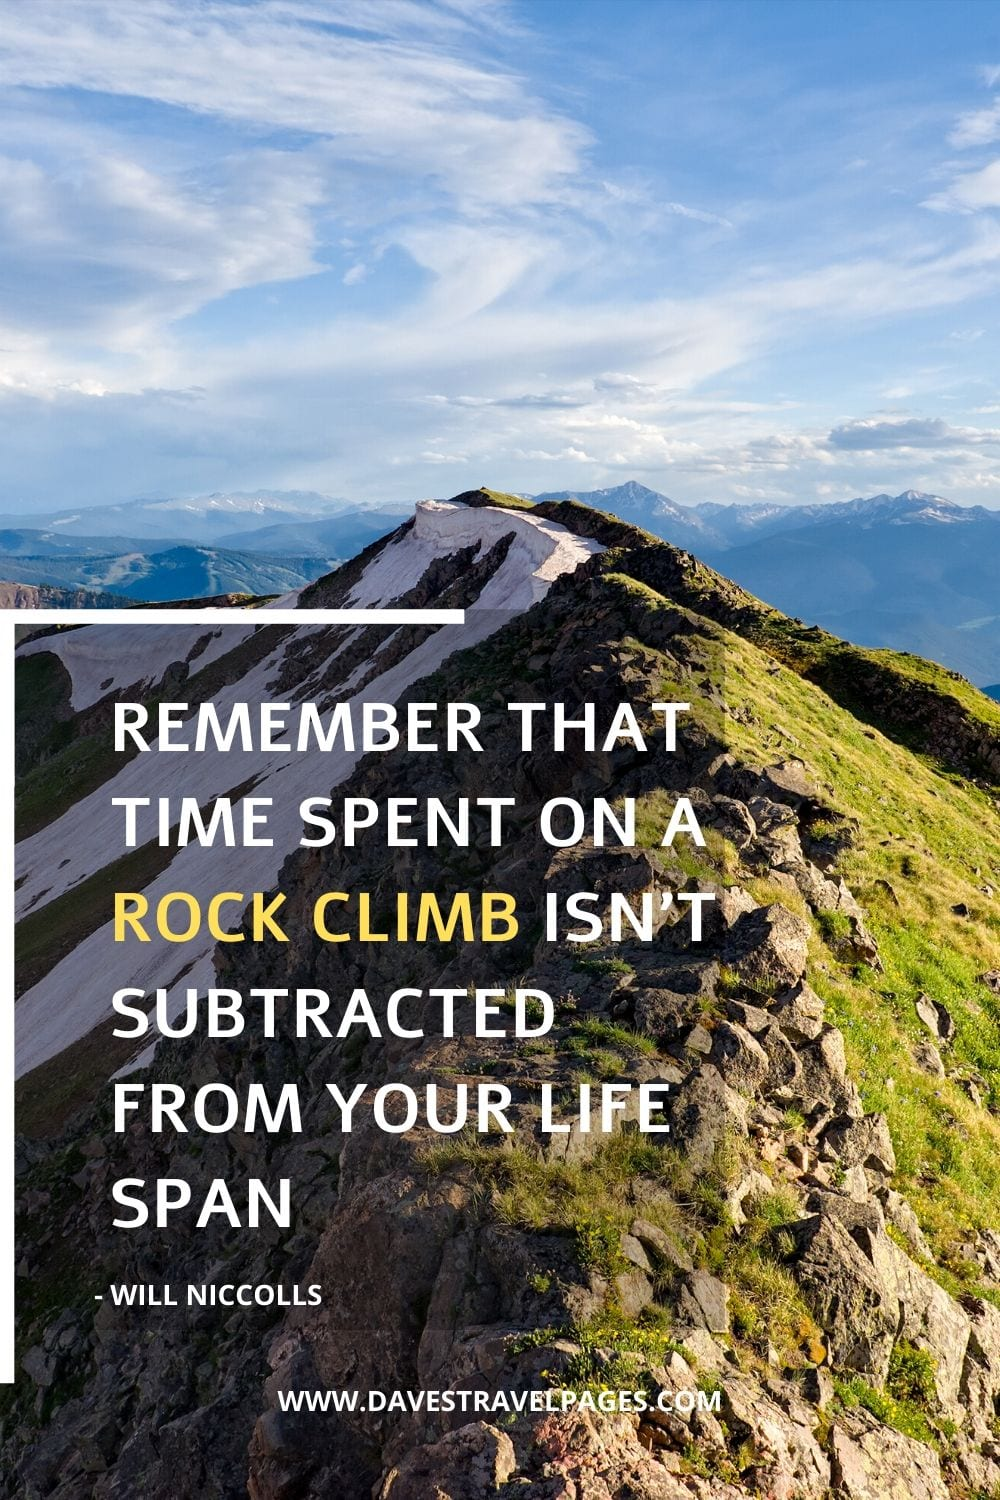 Quotes about rockclimbing: Remember that time spent on a rock climb isn't subtracted from your life span. - Will Niccolls